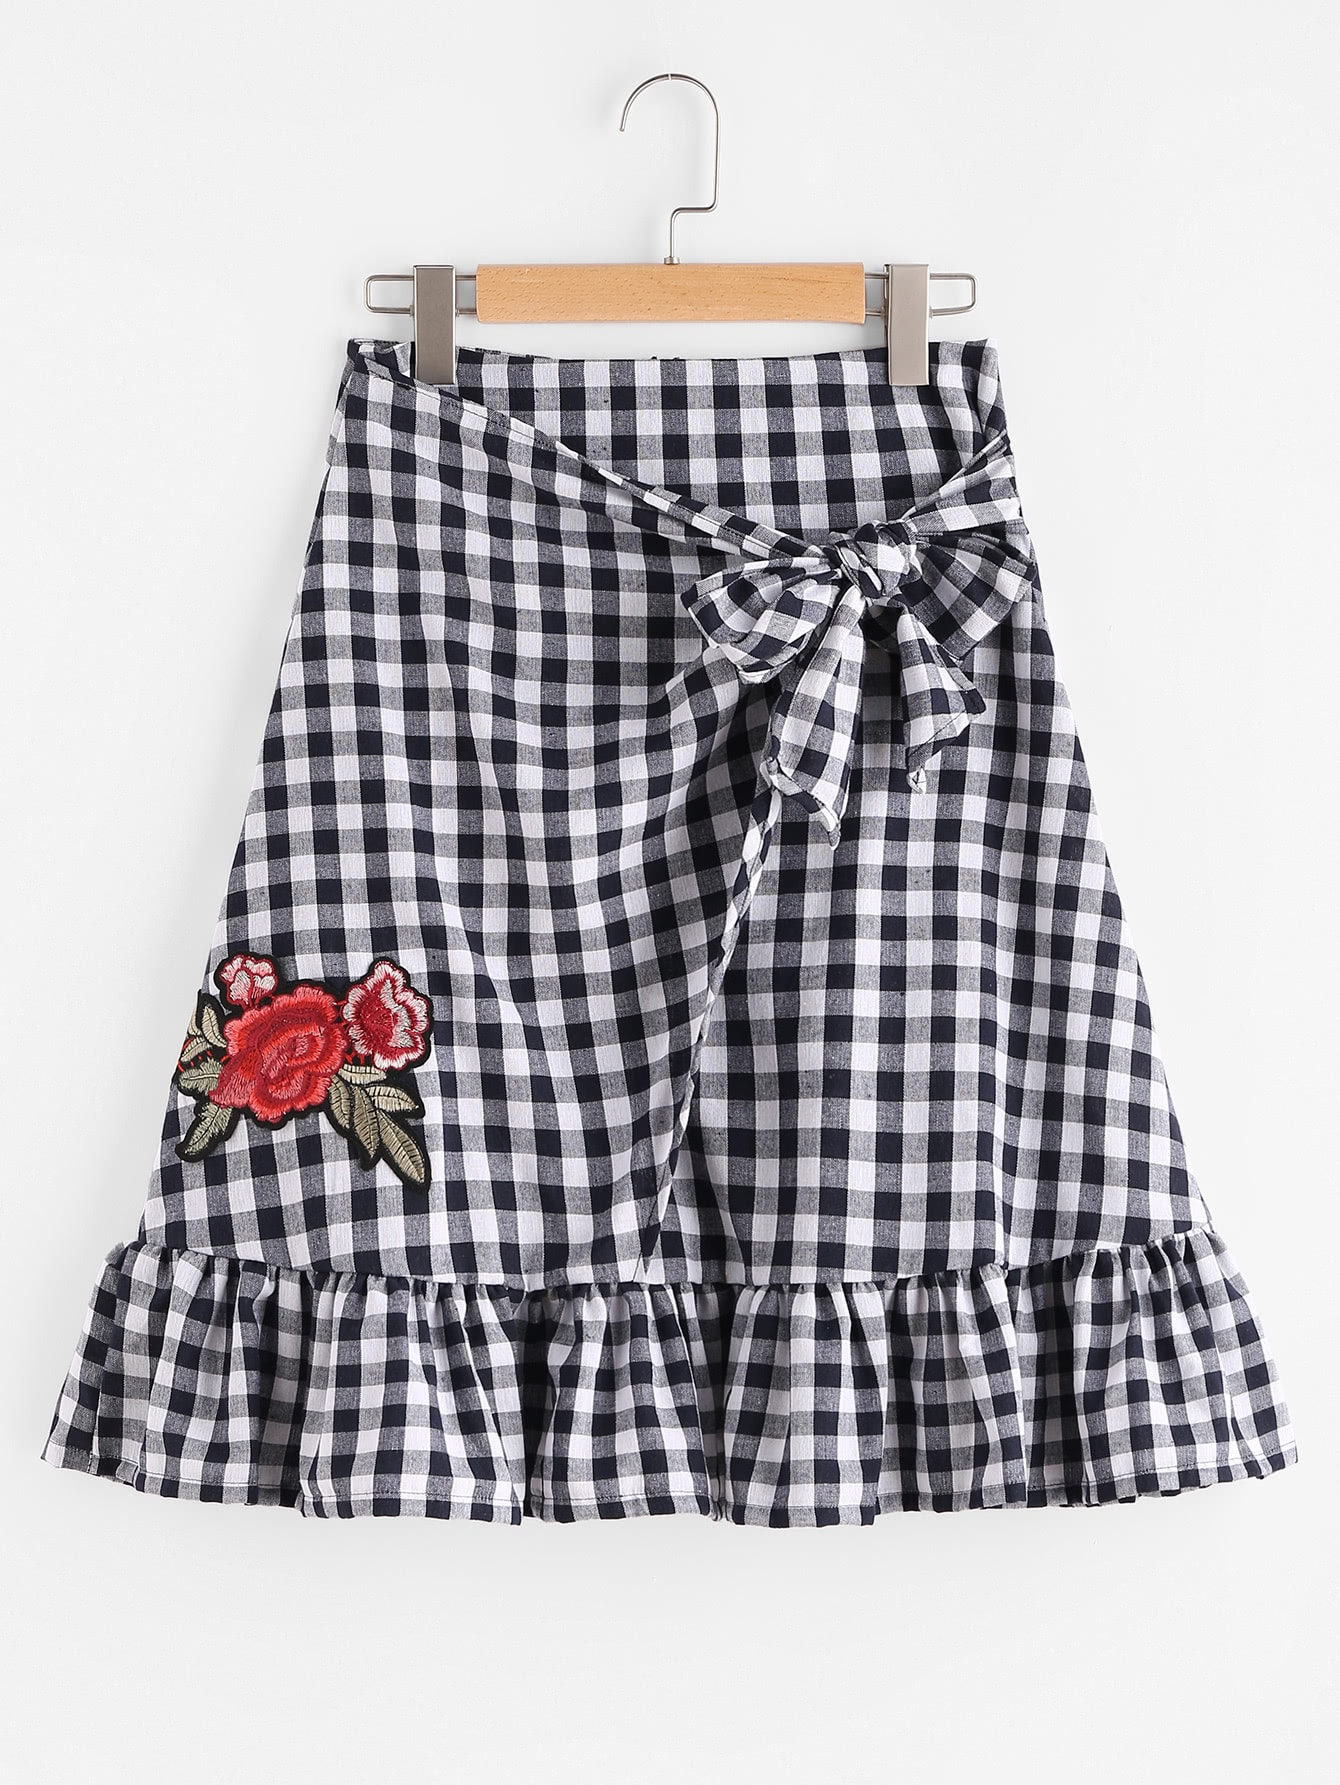 Gingham Appliques Frill Hem Bow Tie Skirt plunged gingham bow tie back romper